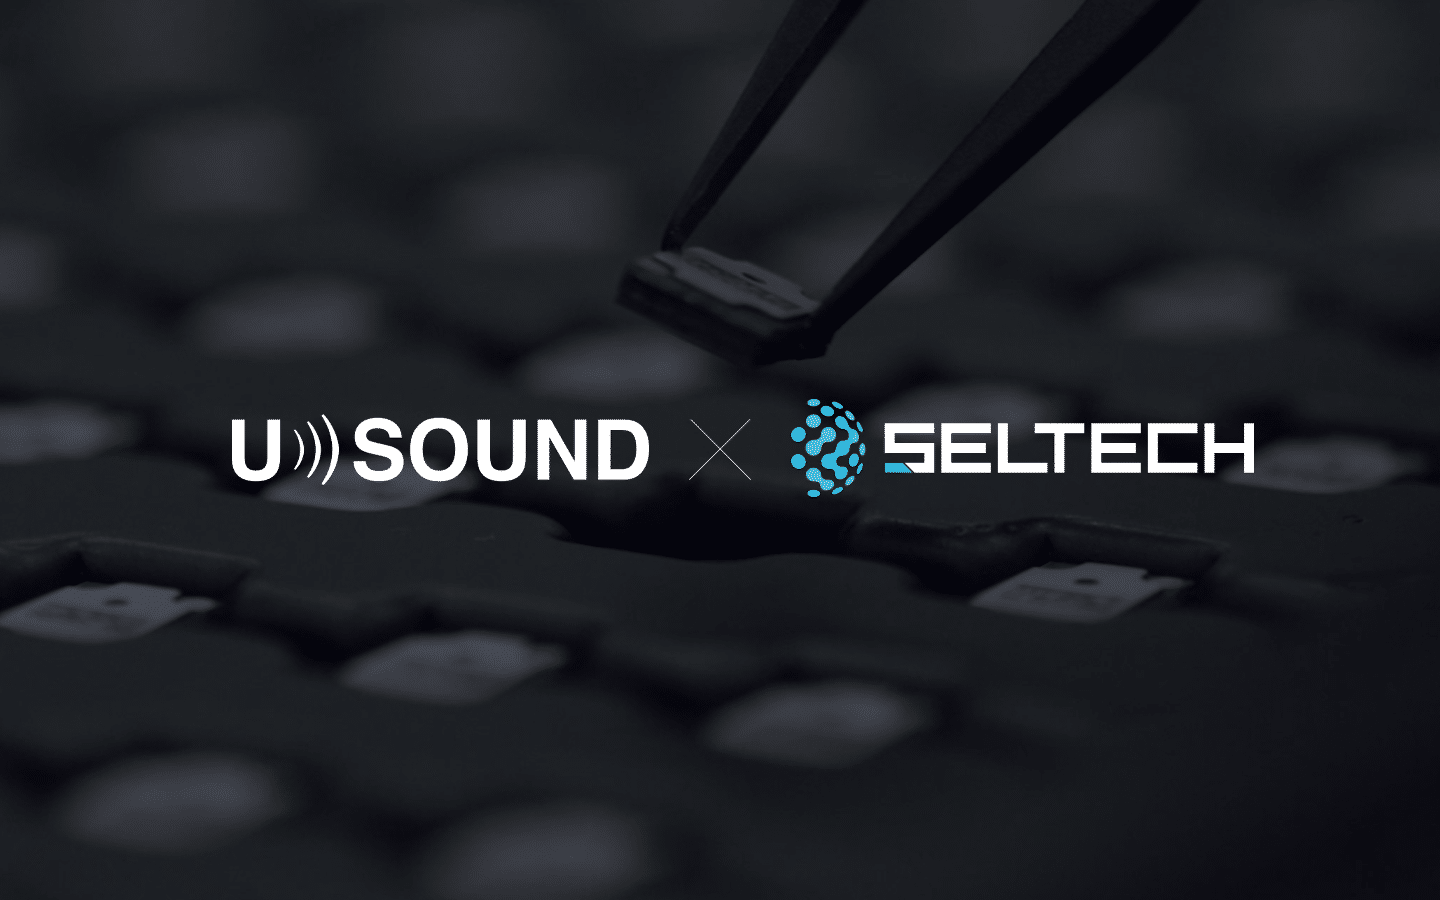 USound and seltech logos announcing cooperation